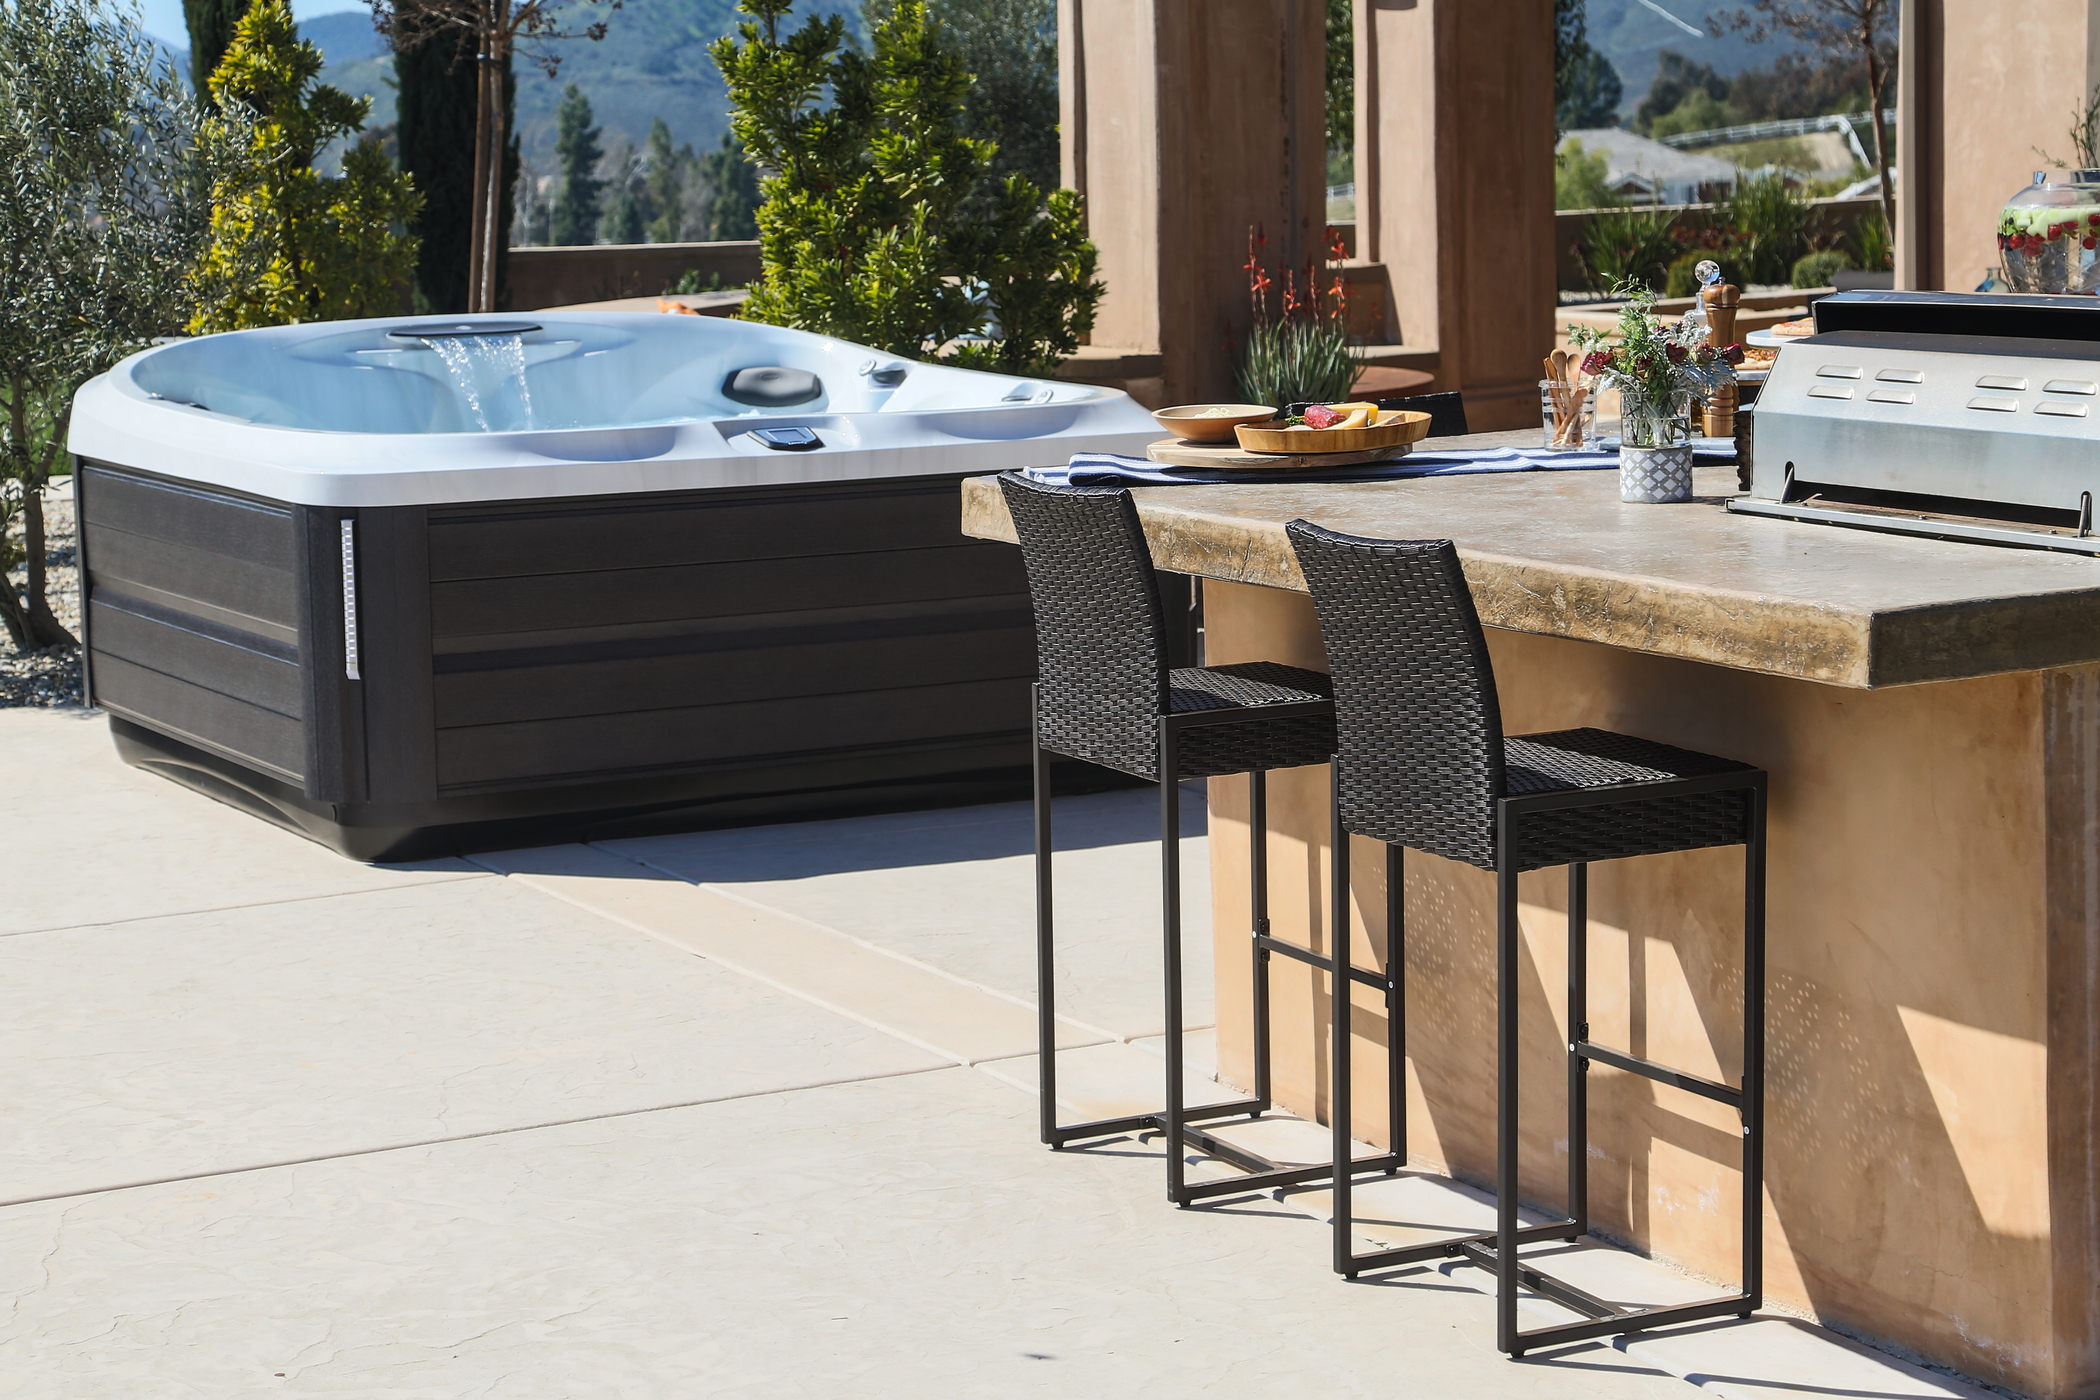 Jacuzzi Hot Tub on a patio